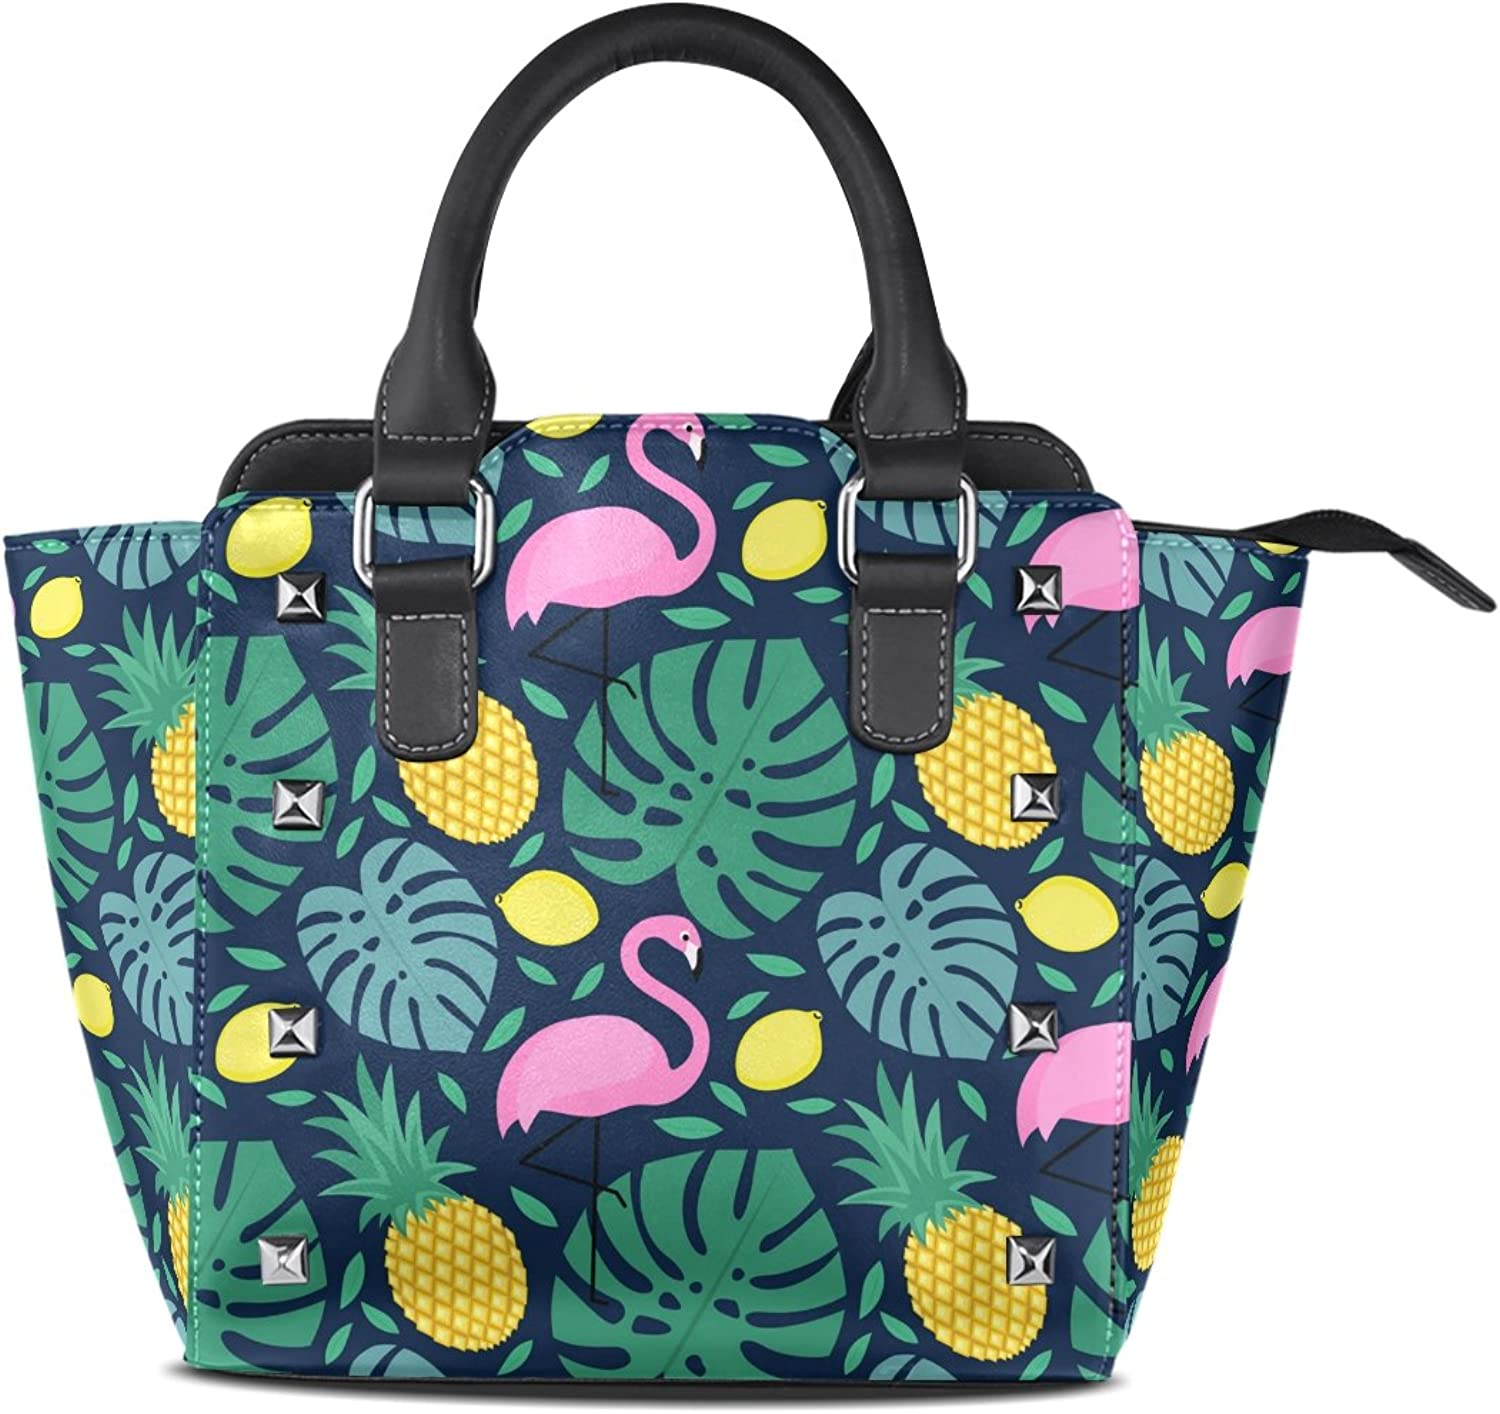 My Little Nest Women's Top Handle Satchel Handbag Flamingo Pineapple Lemons Ladies PU Leather Shoulder Bag Crossbody Bag